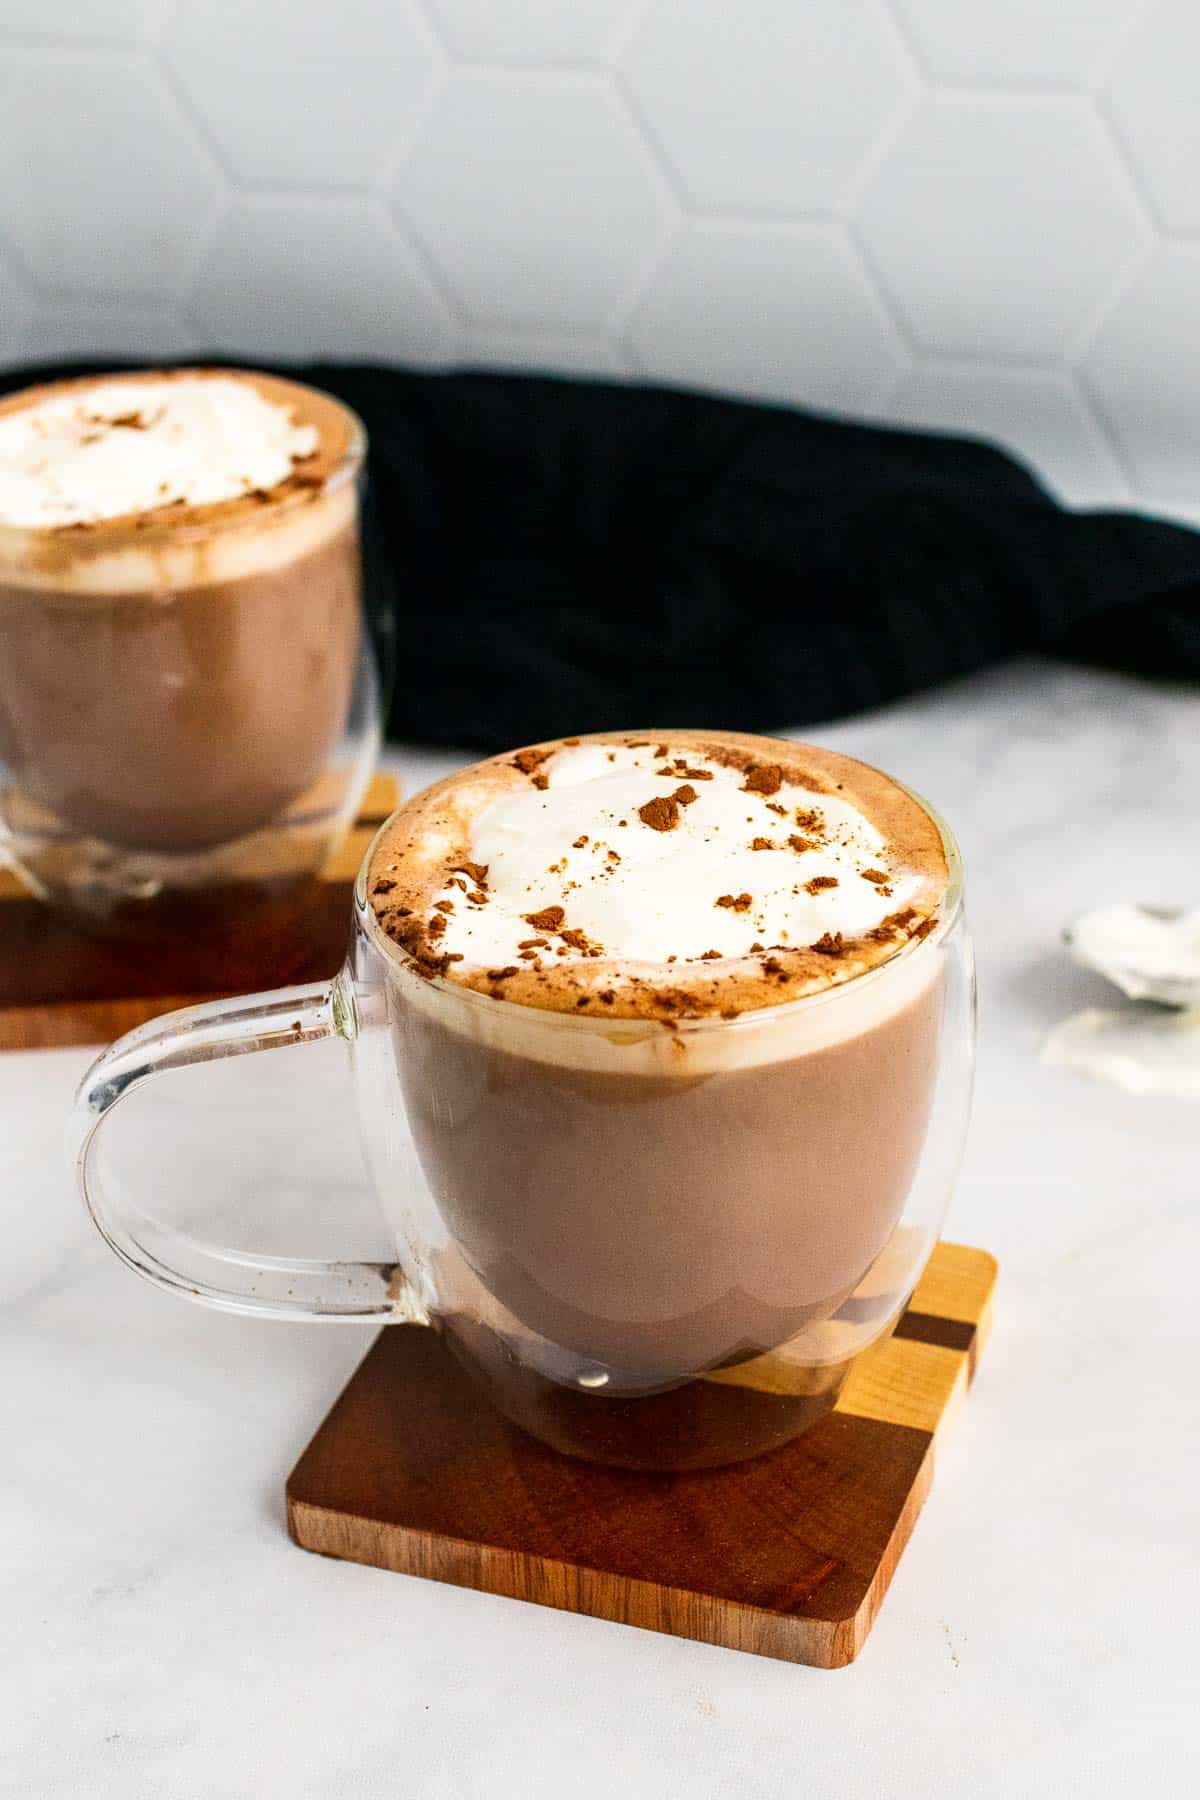 Two mugs of hot chocolate resting on a wooden coaster, topped with whipped cream and cocoa powder